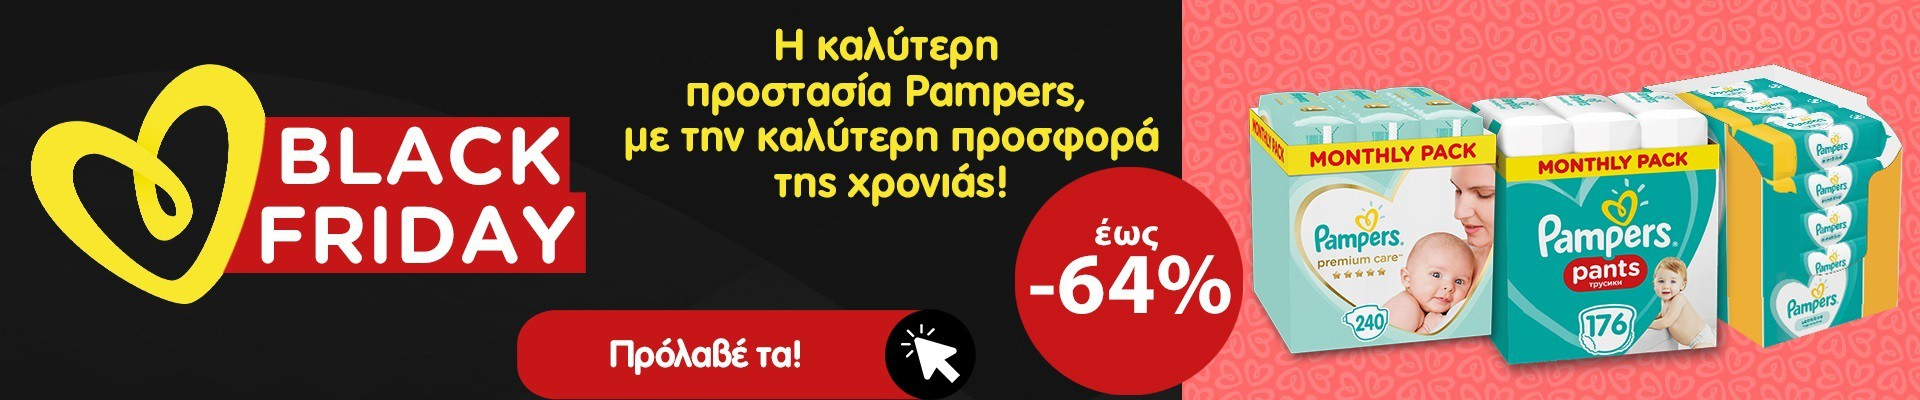 Black Friday Pampers -64%